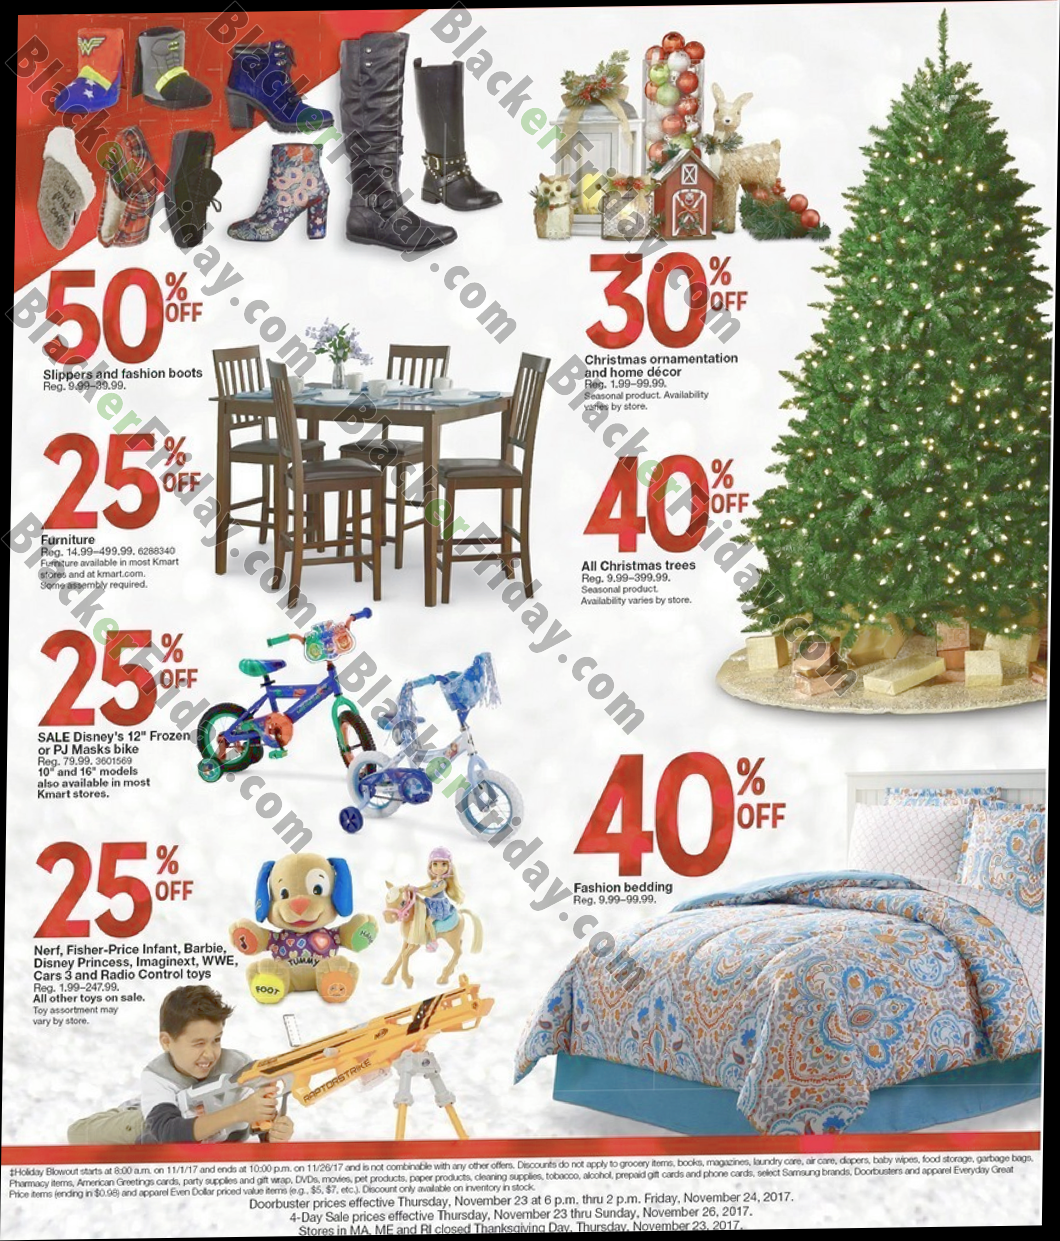 Is Kmart Open On Christmas Day.Kmart Black Friday 2019 Ad Sale Blackerfriday Com